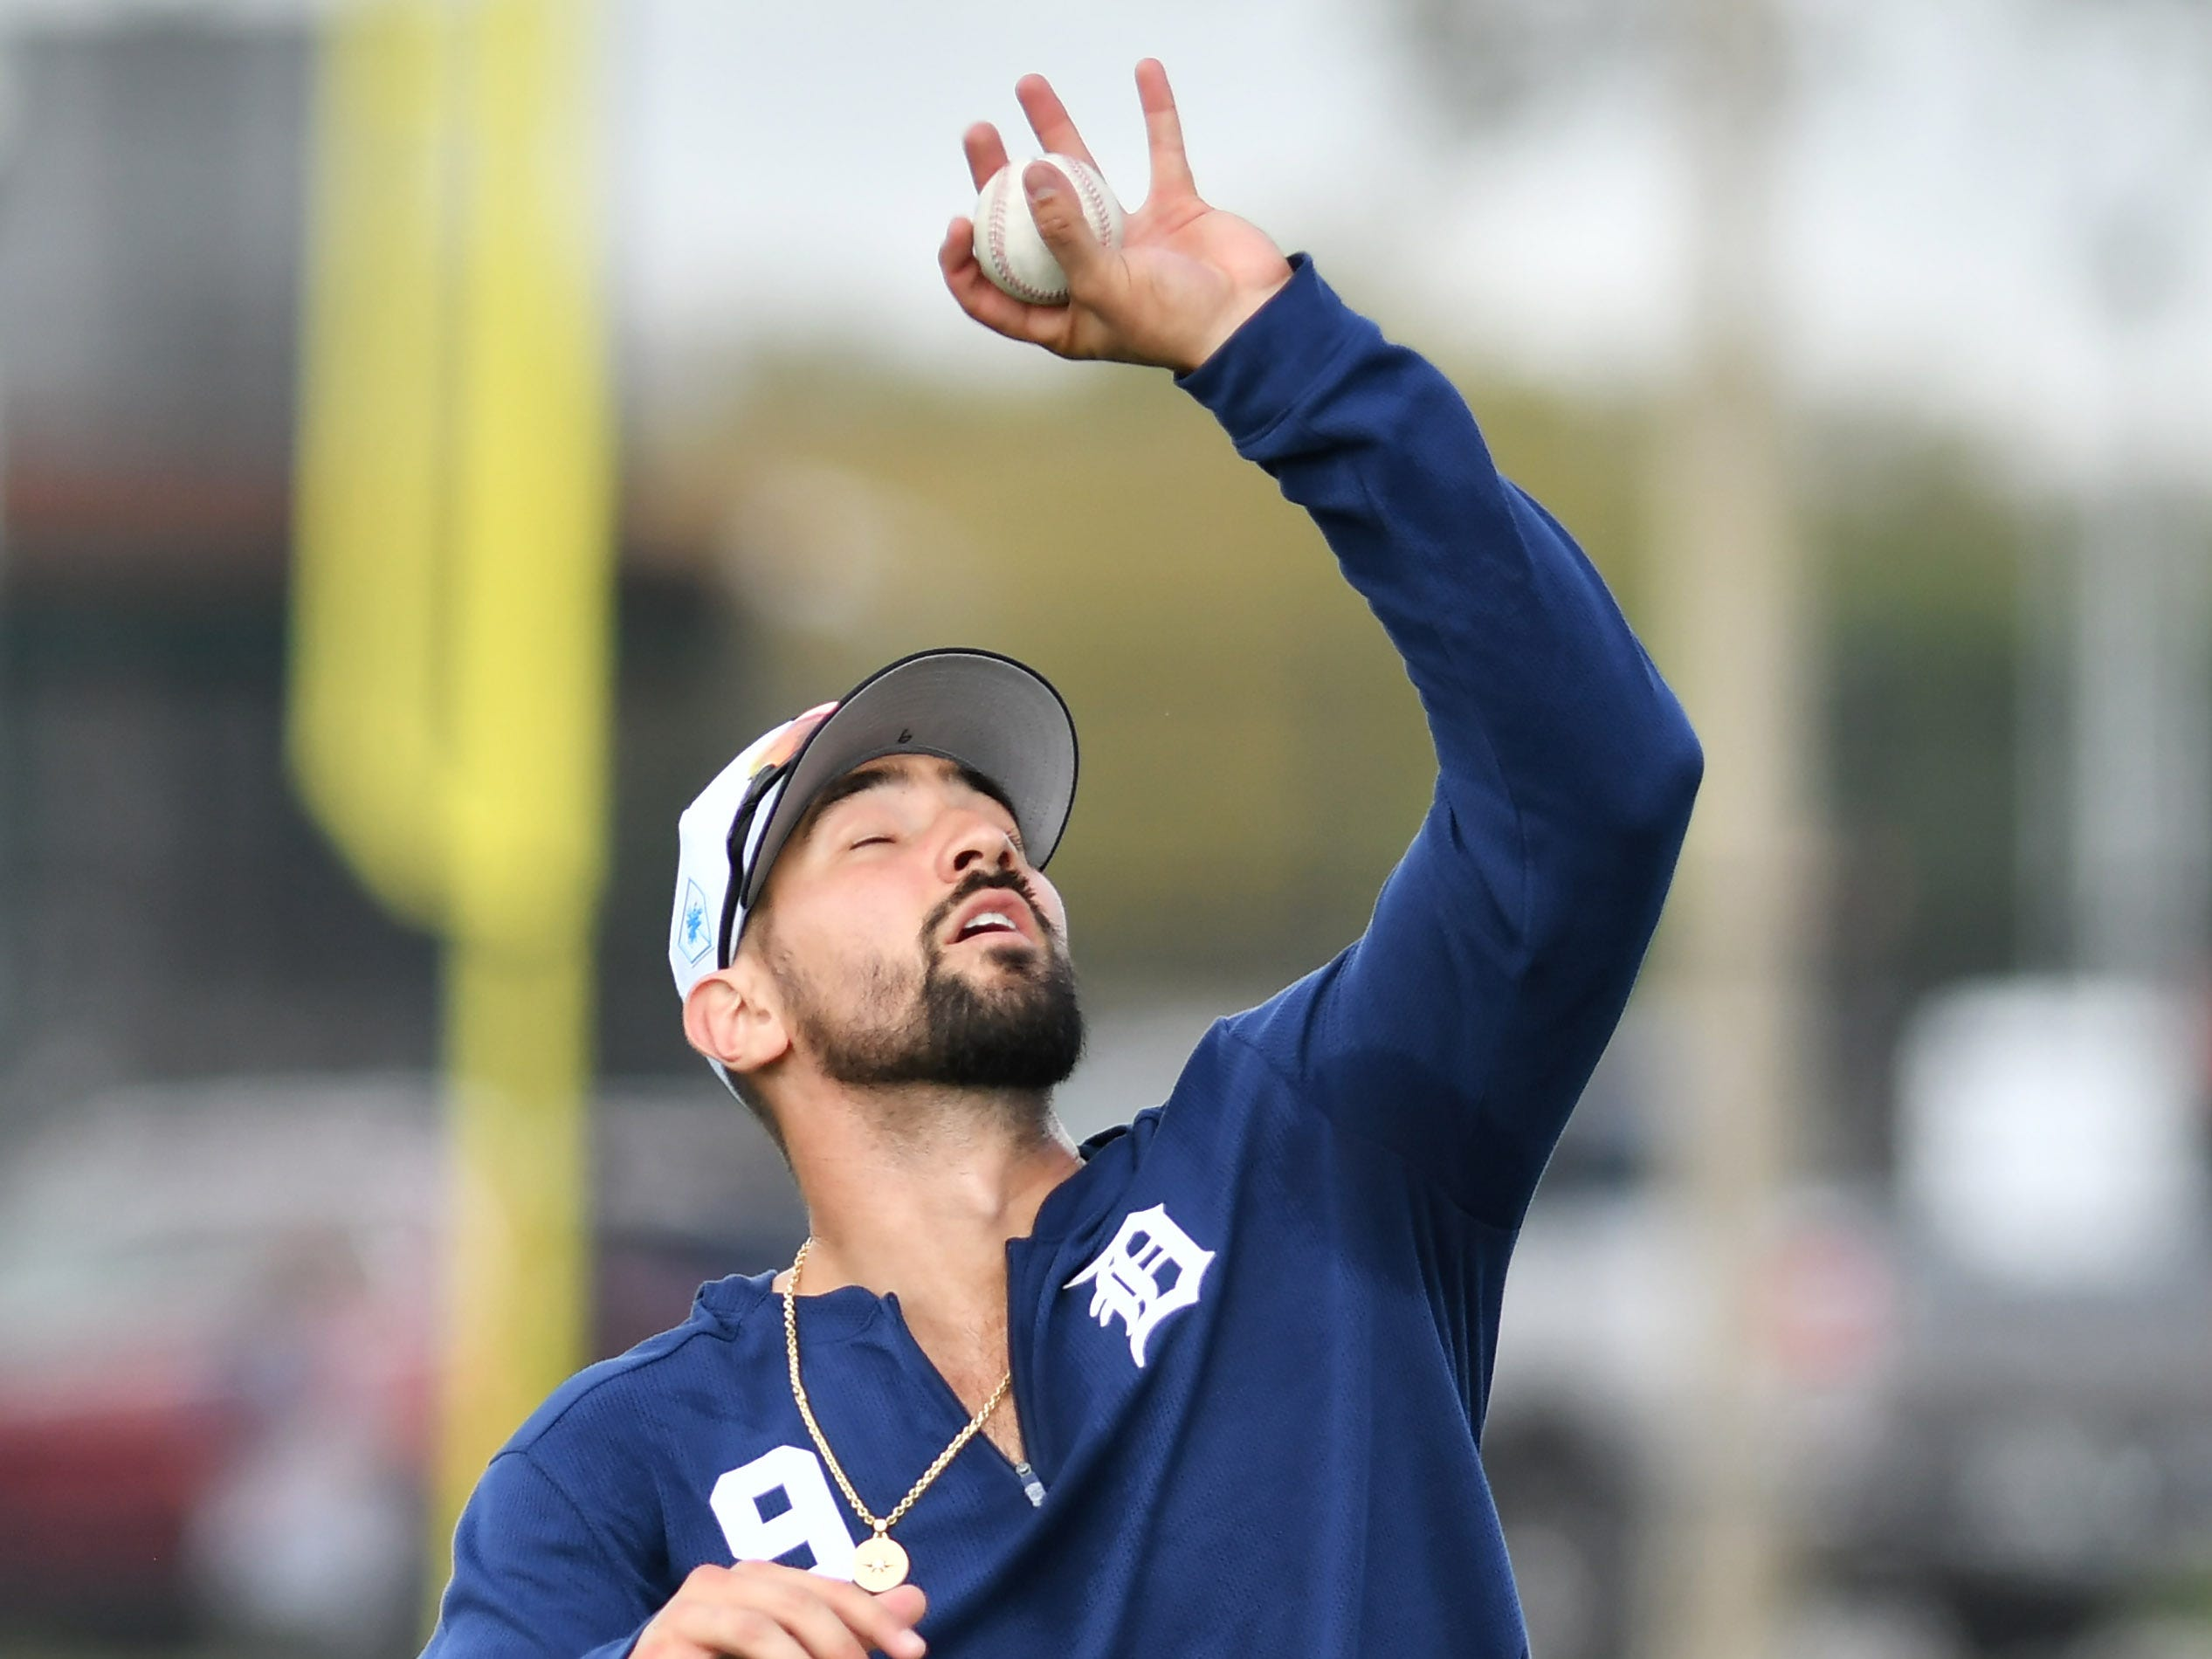 Tigers outfielder Nick Castellanos catches a pop-up barehanded during drills.